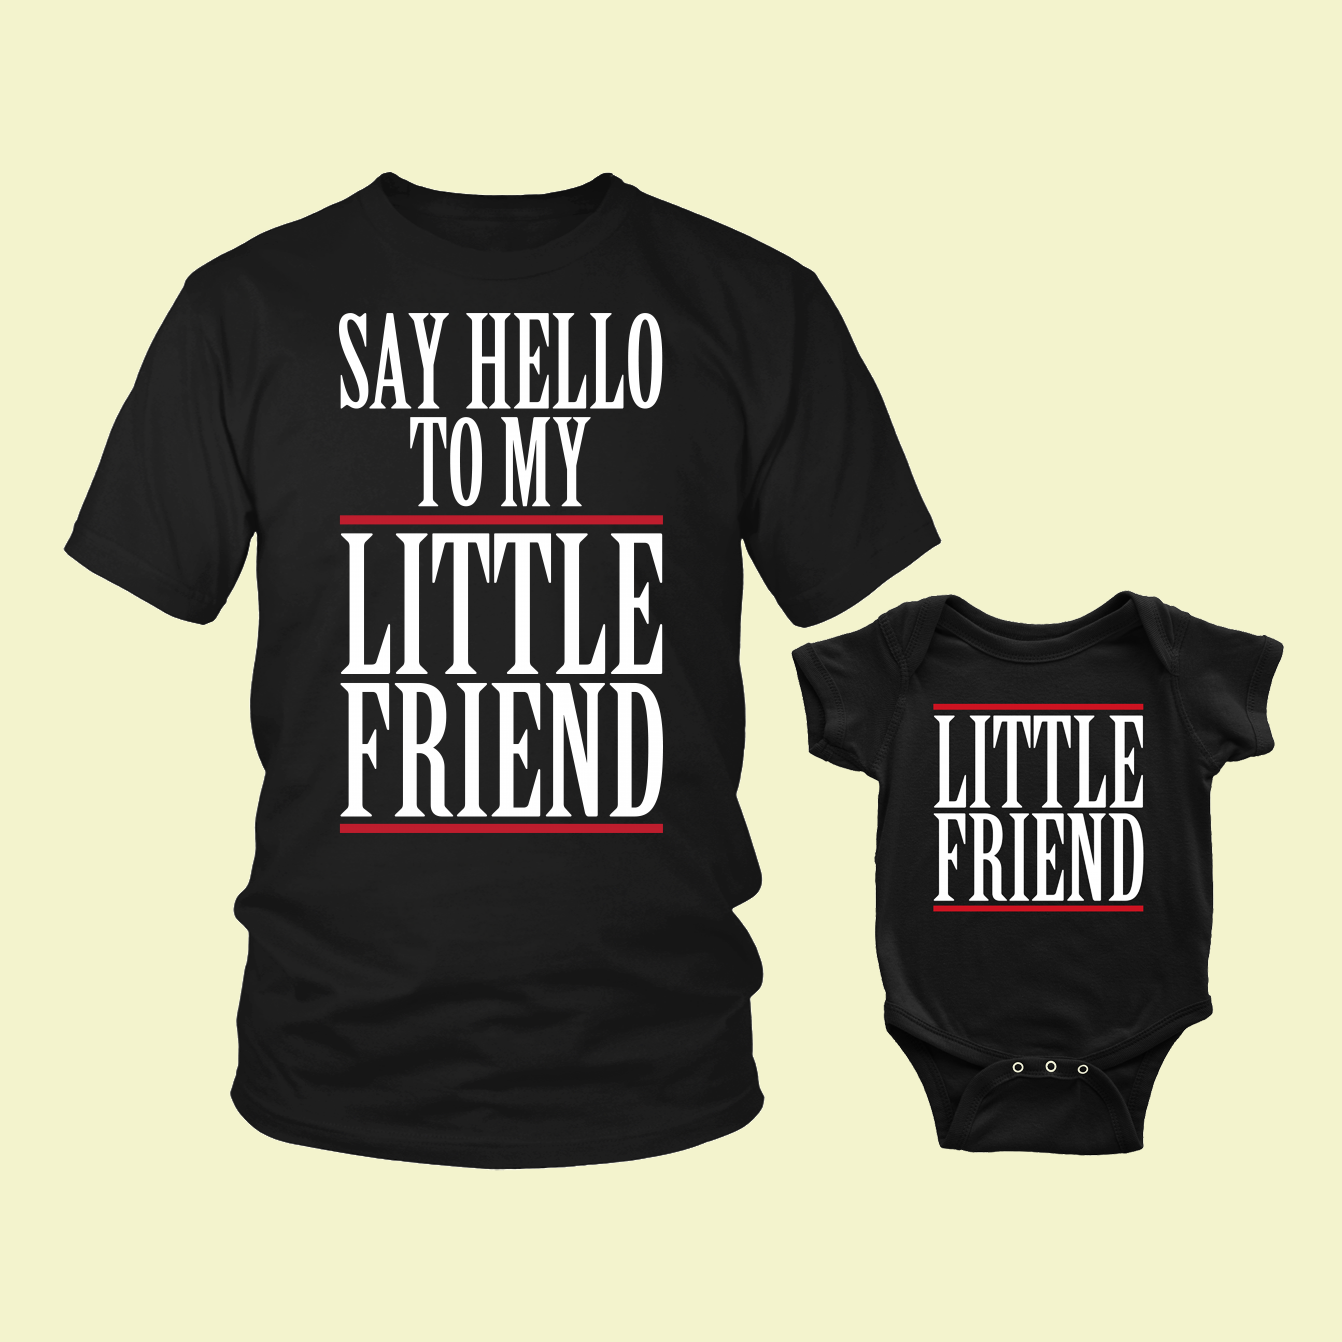 34efc5bb0 Say Hello to My Little Friend Matching Set (Adult and Baby) ...